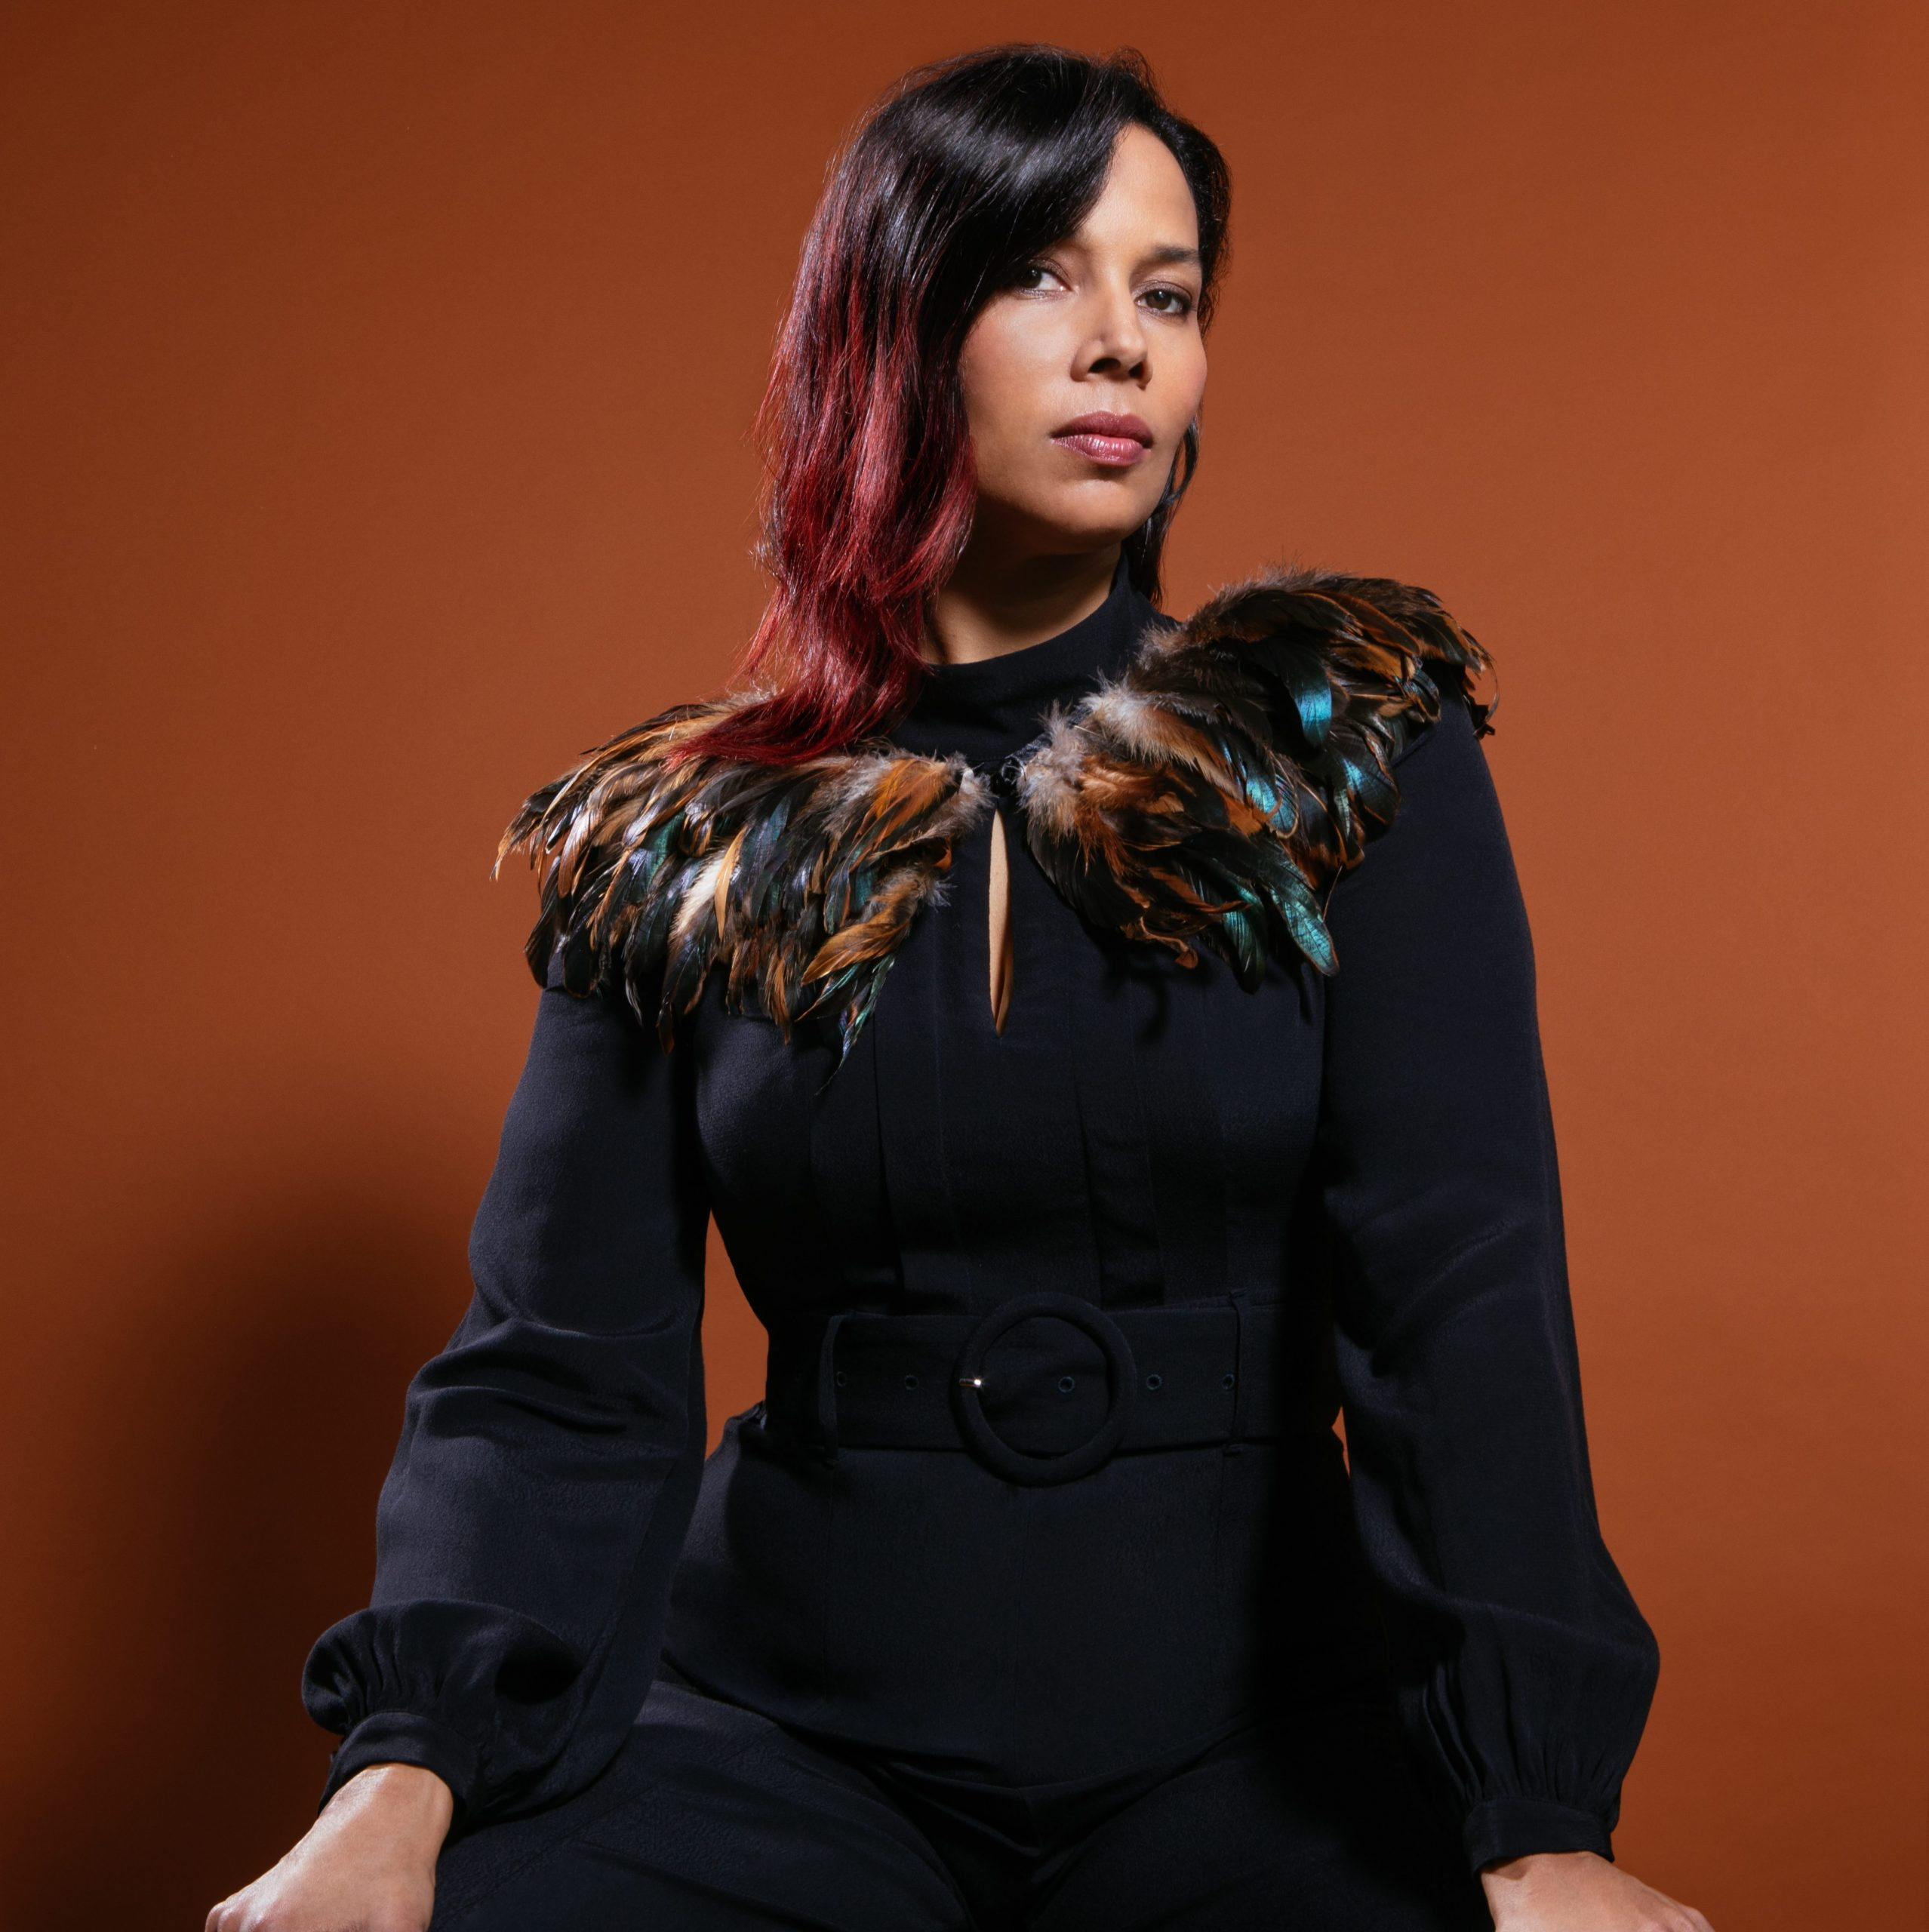 Artist Rhiannon Giddens poses wearing a black dress with feathers around the collar against a burnt orange background.